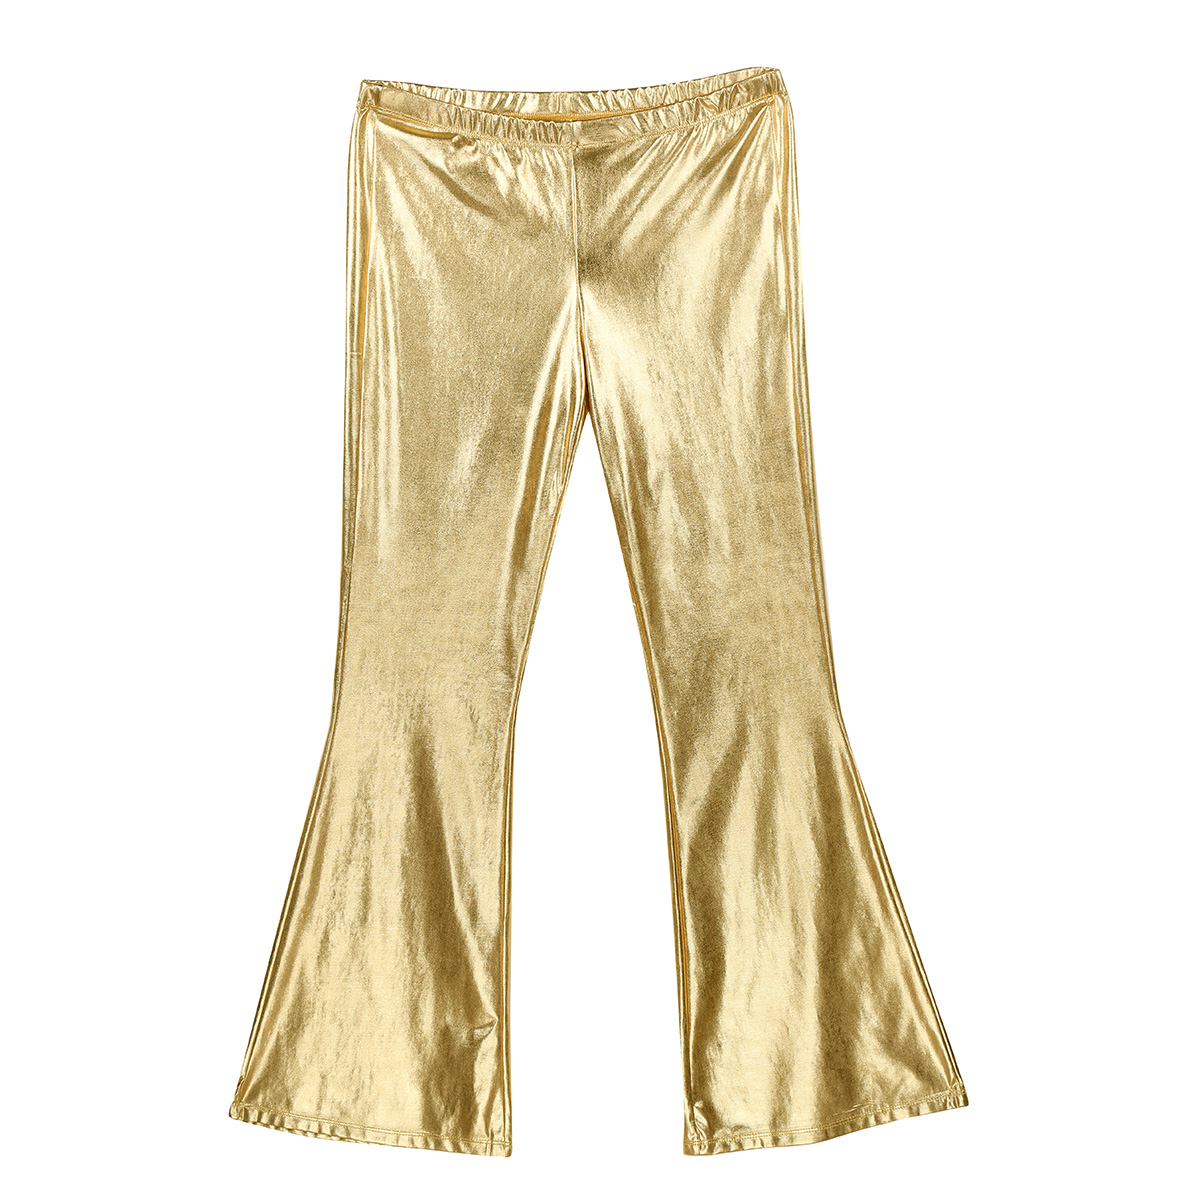 ChicTry Adults Mens Shiny Metallic Disco Pants with Bell Bottom Flared Long Pants Dude Costume Trousers for 70's Theme Parties 24